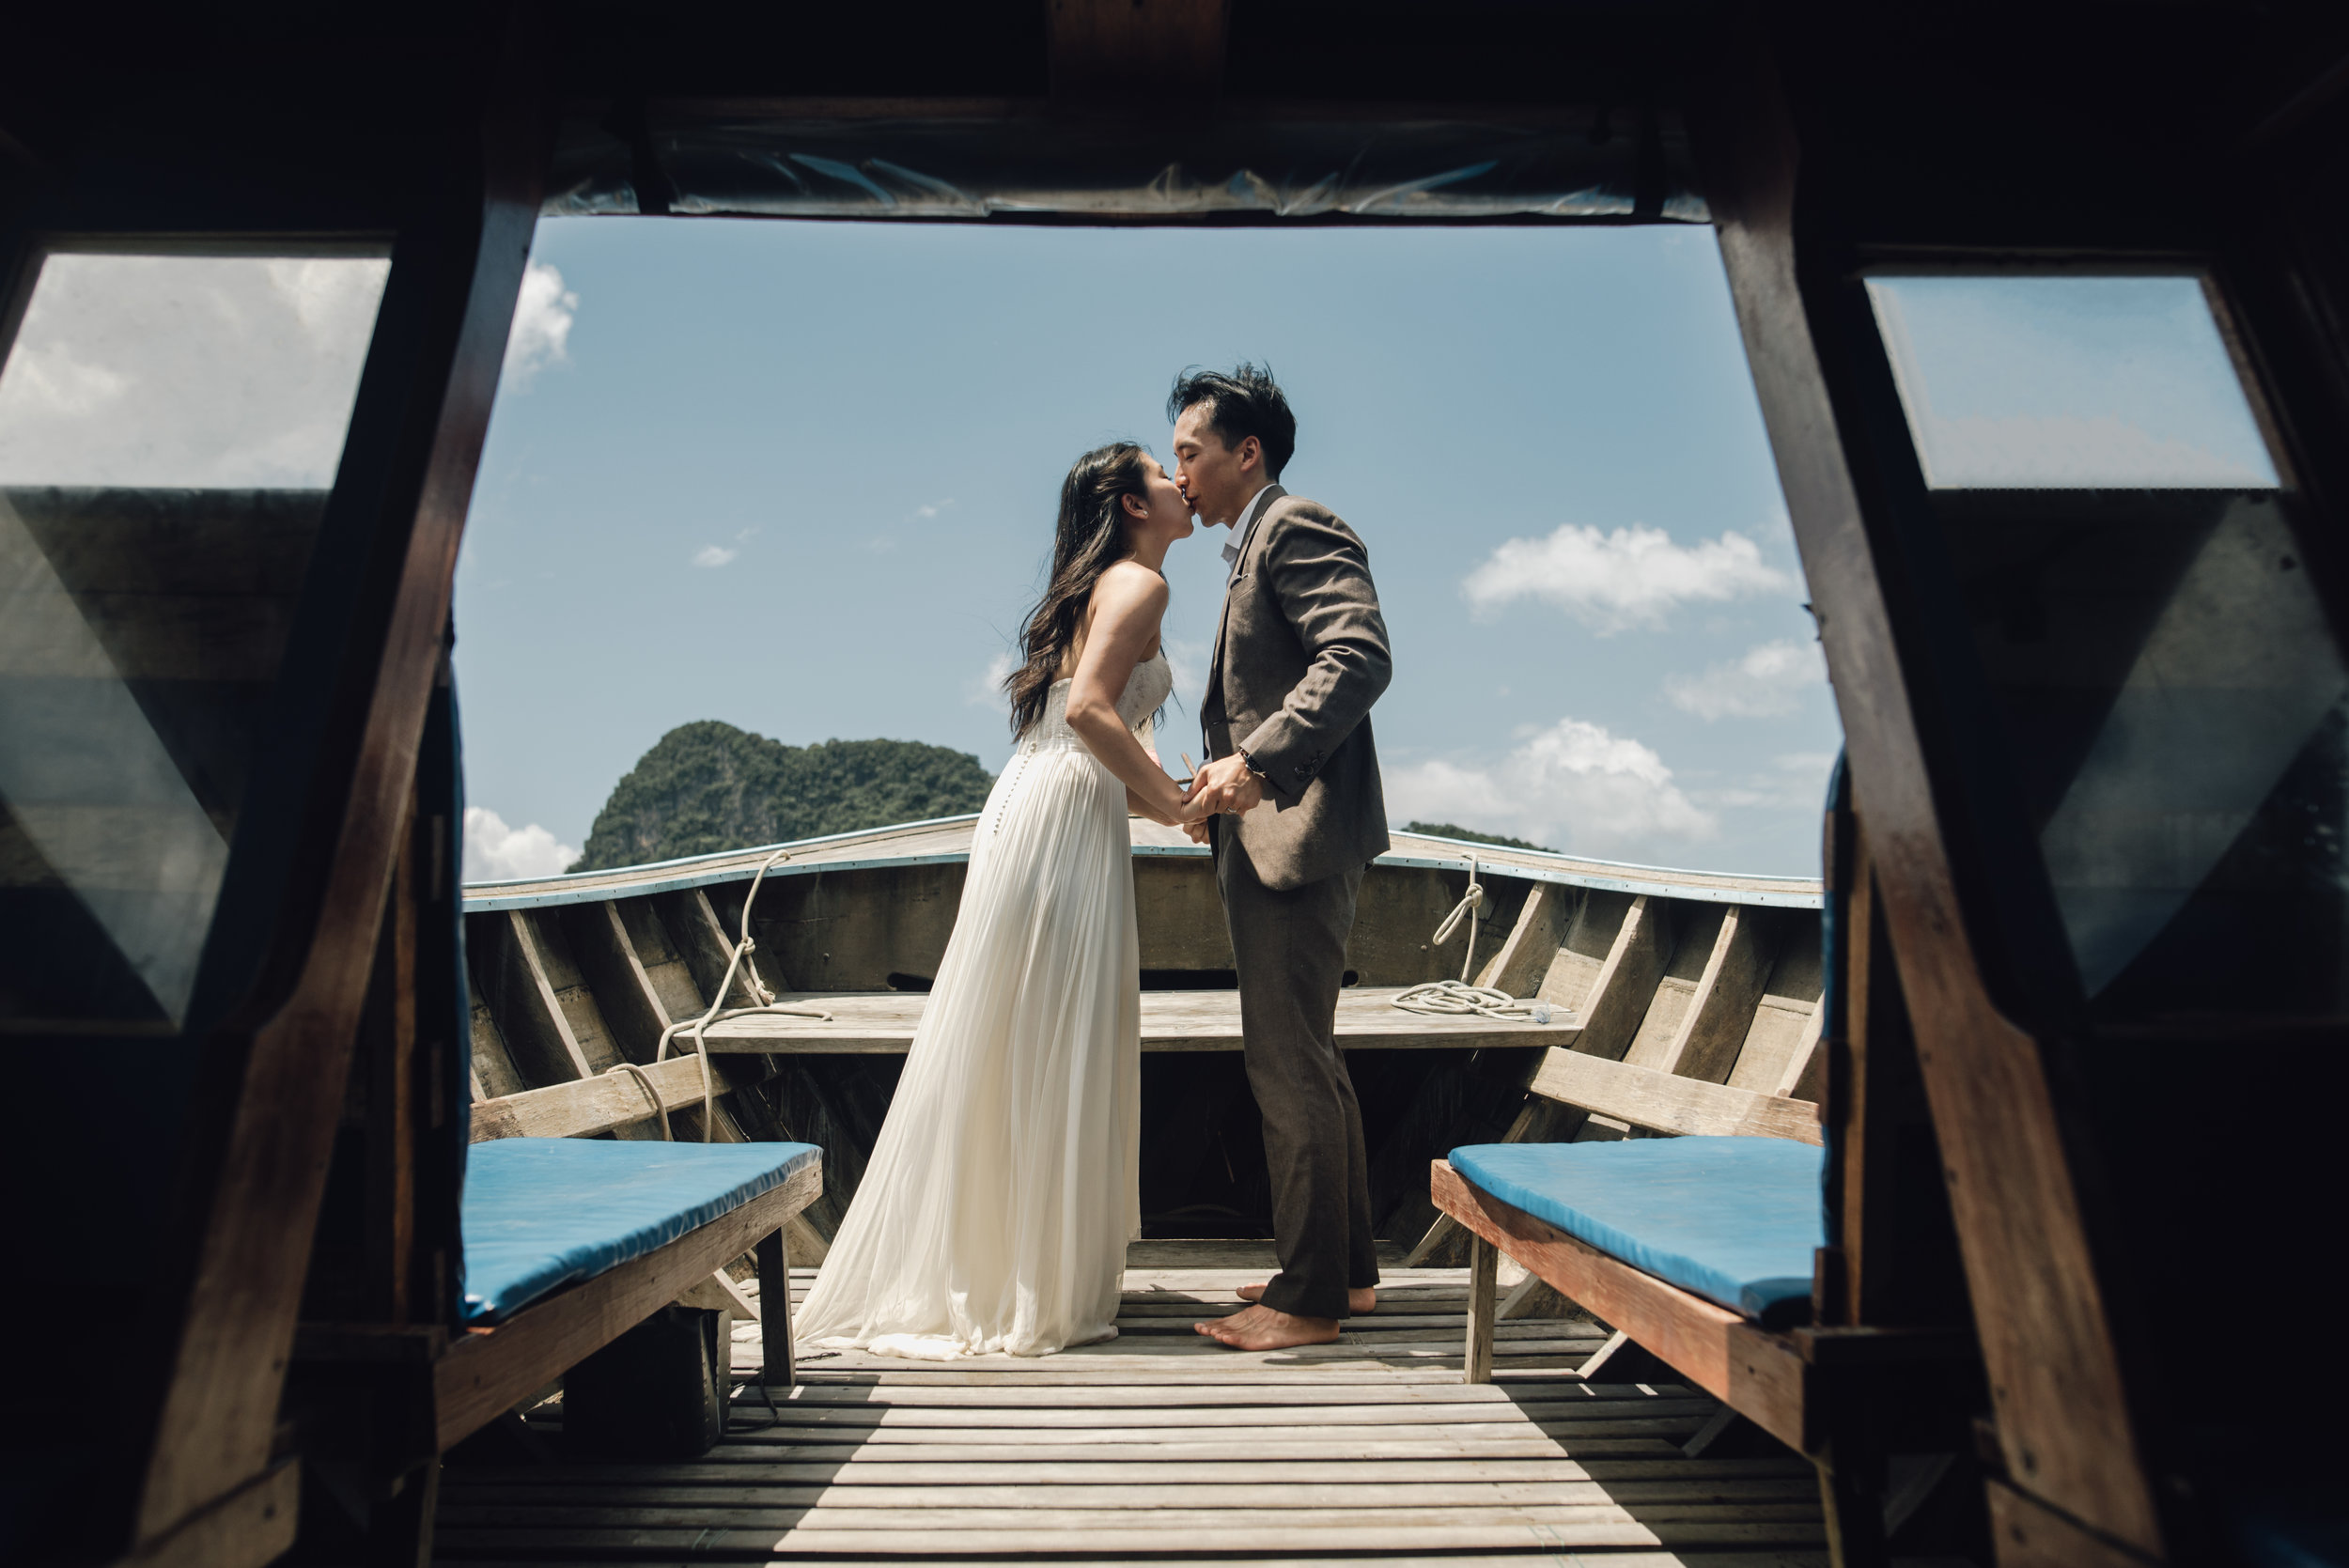 Main and Simple Photography_2017_Elopement_Thailand_J+H-528.jpg